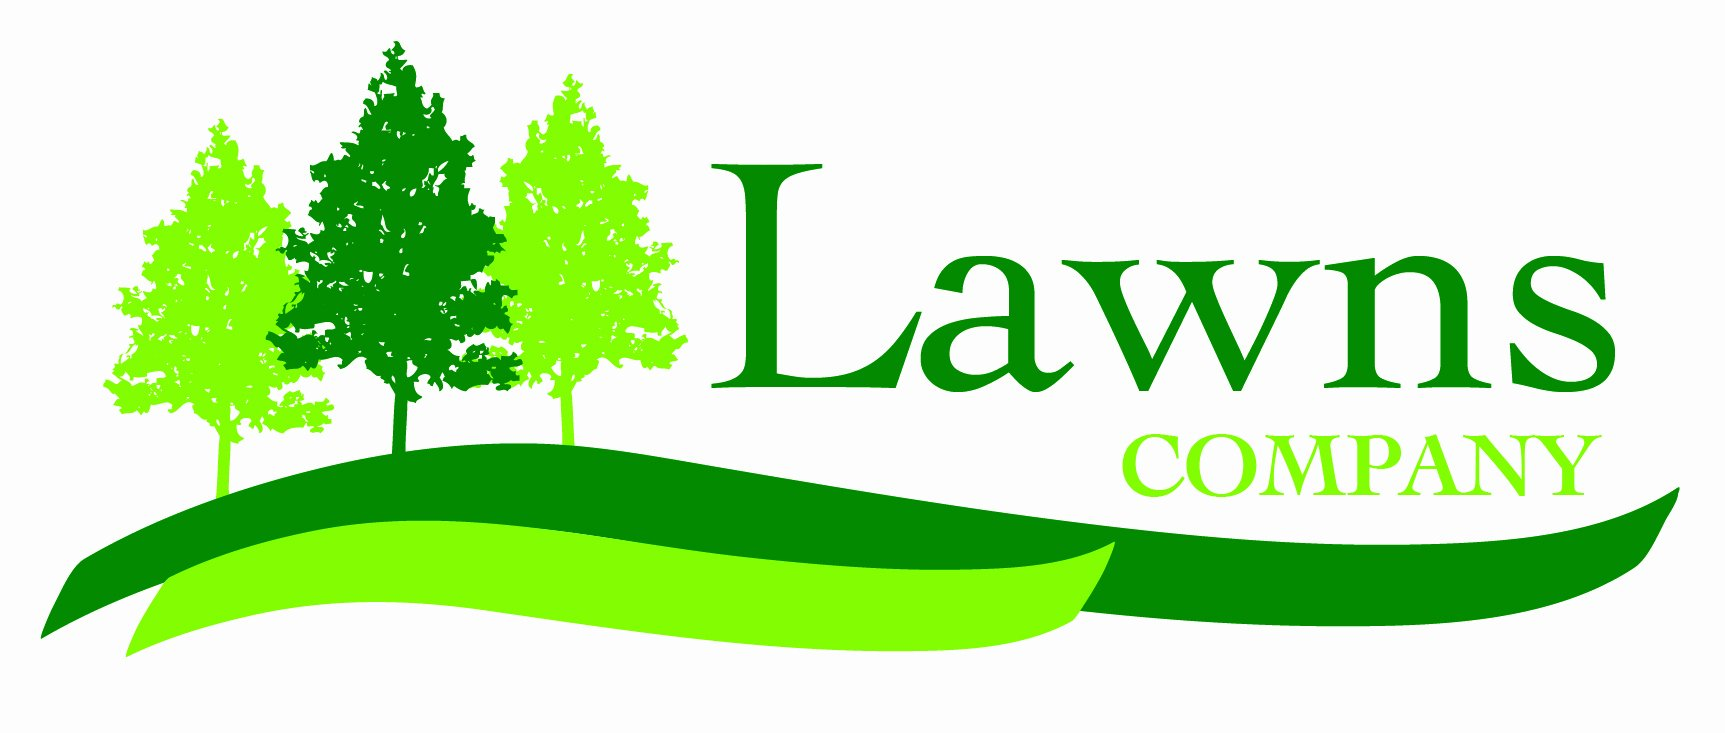 Lawn Care Business Logos New Lawn Care Logos Lawn Care Life